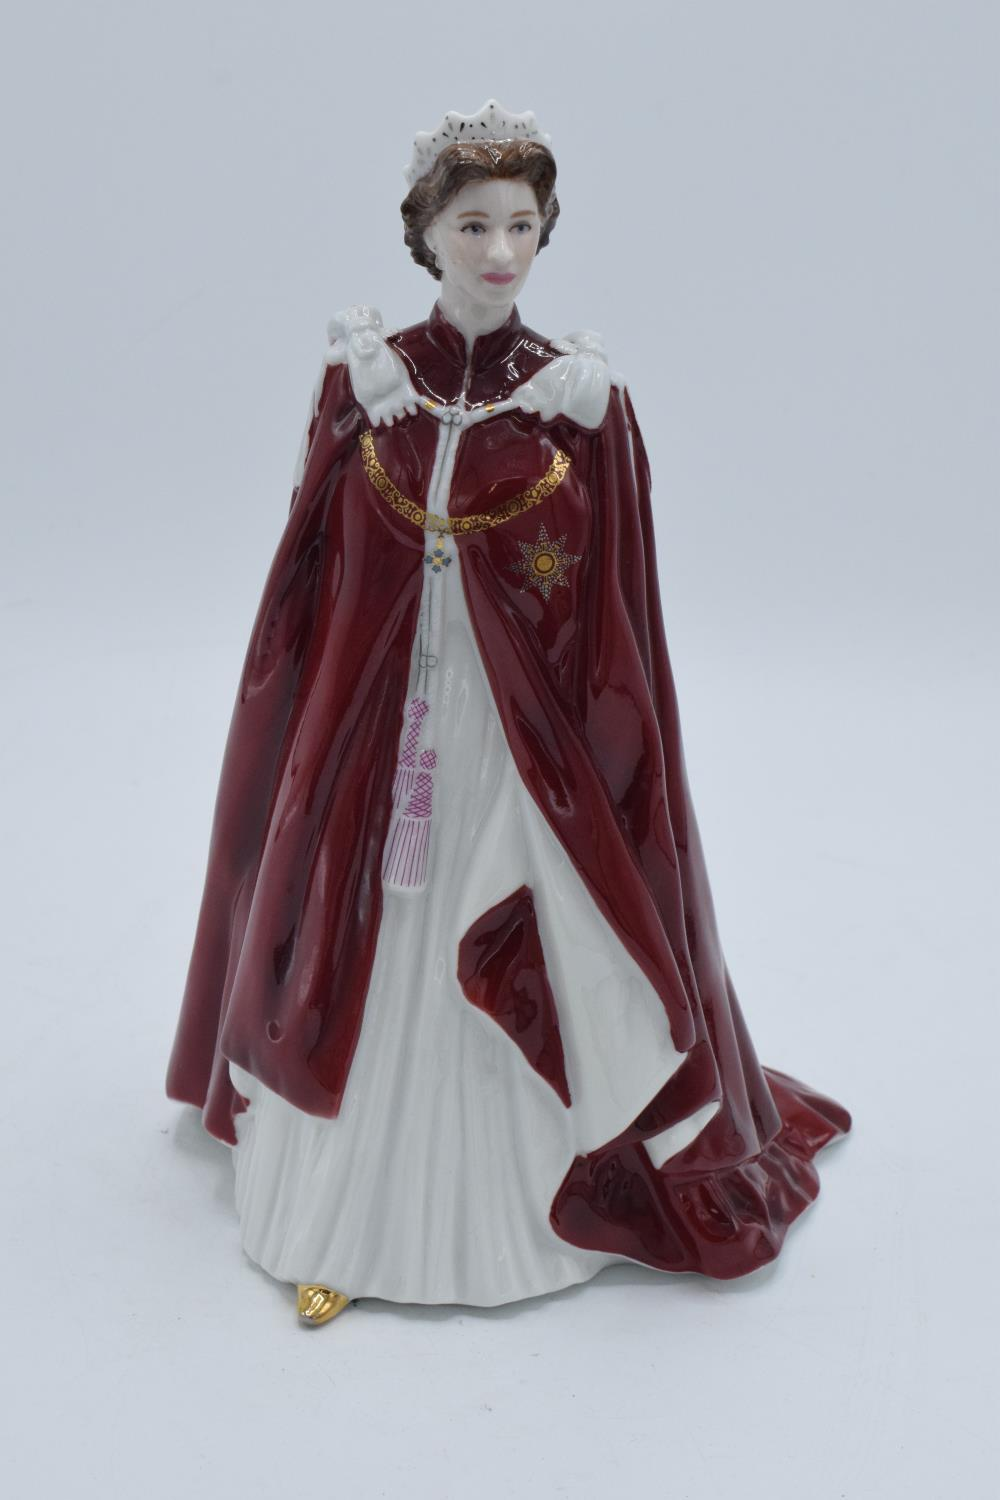 Royal Worcester figure Queens 80th Birthday. In good condition with no obvious damage or